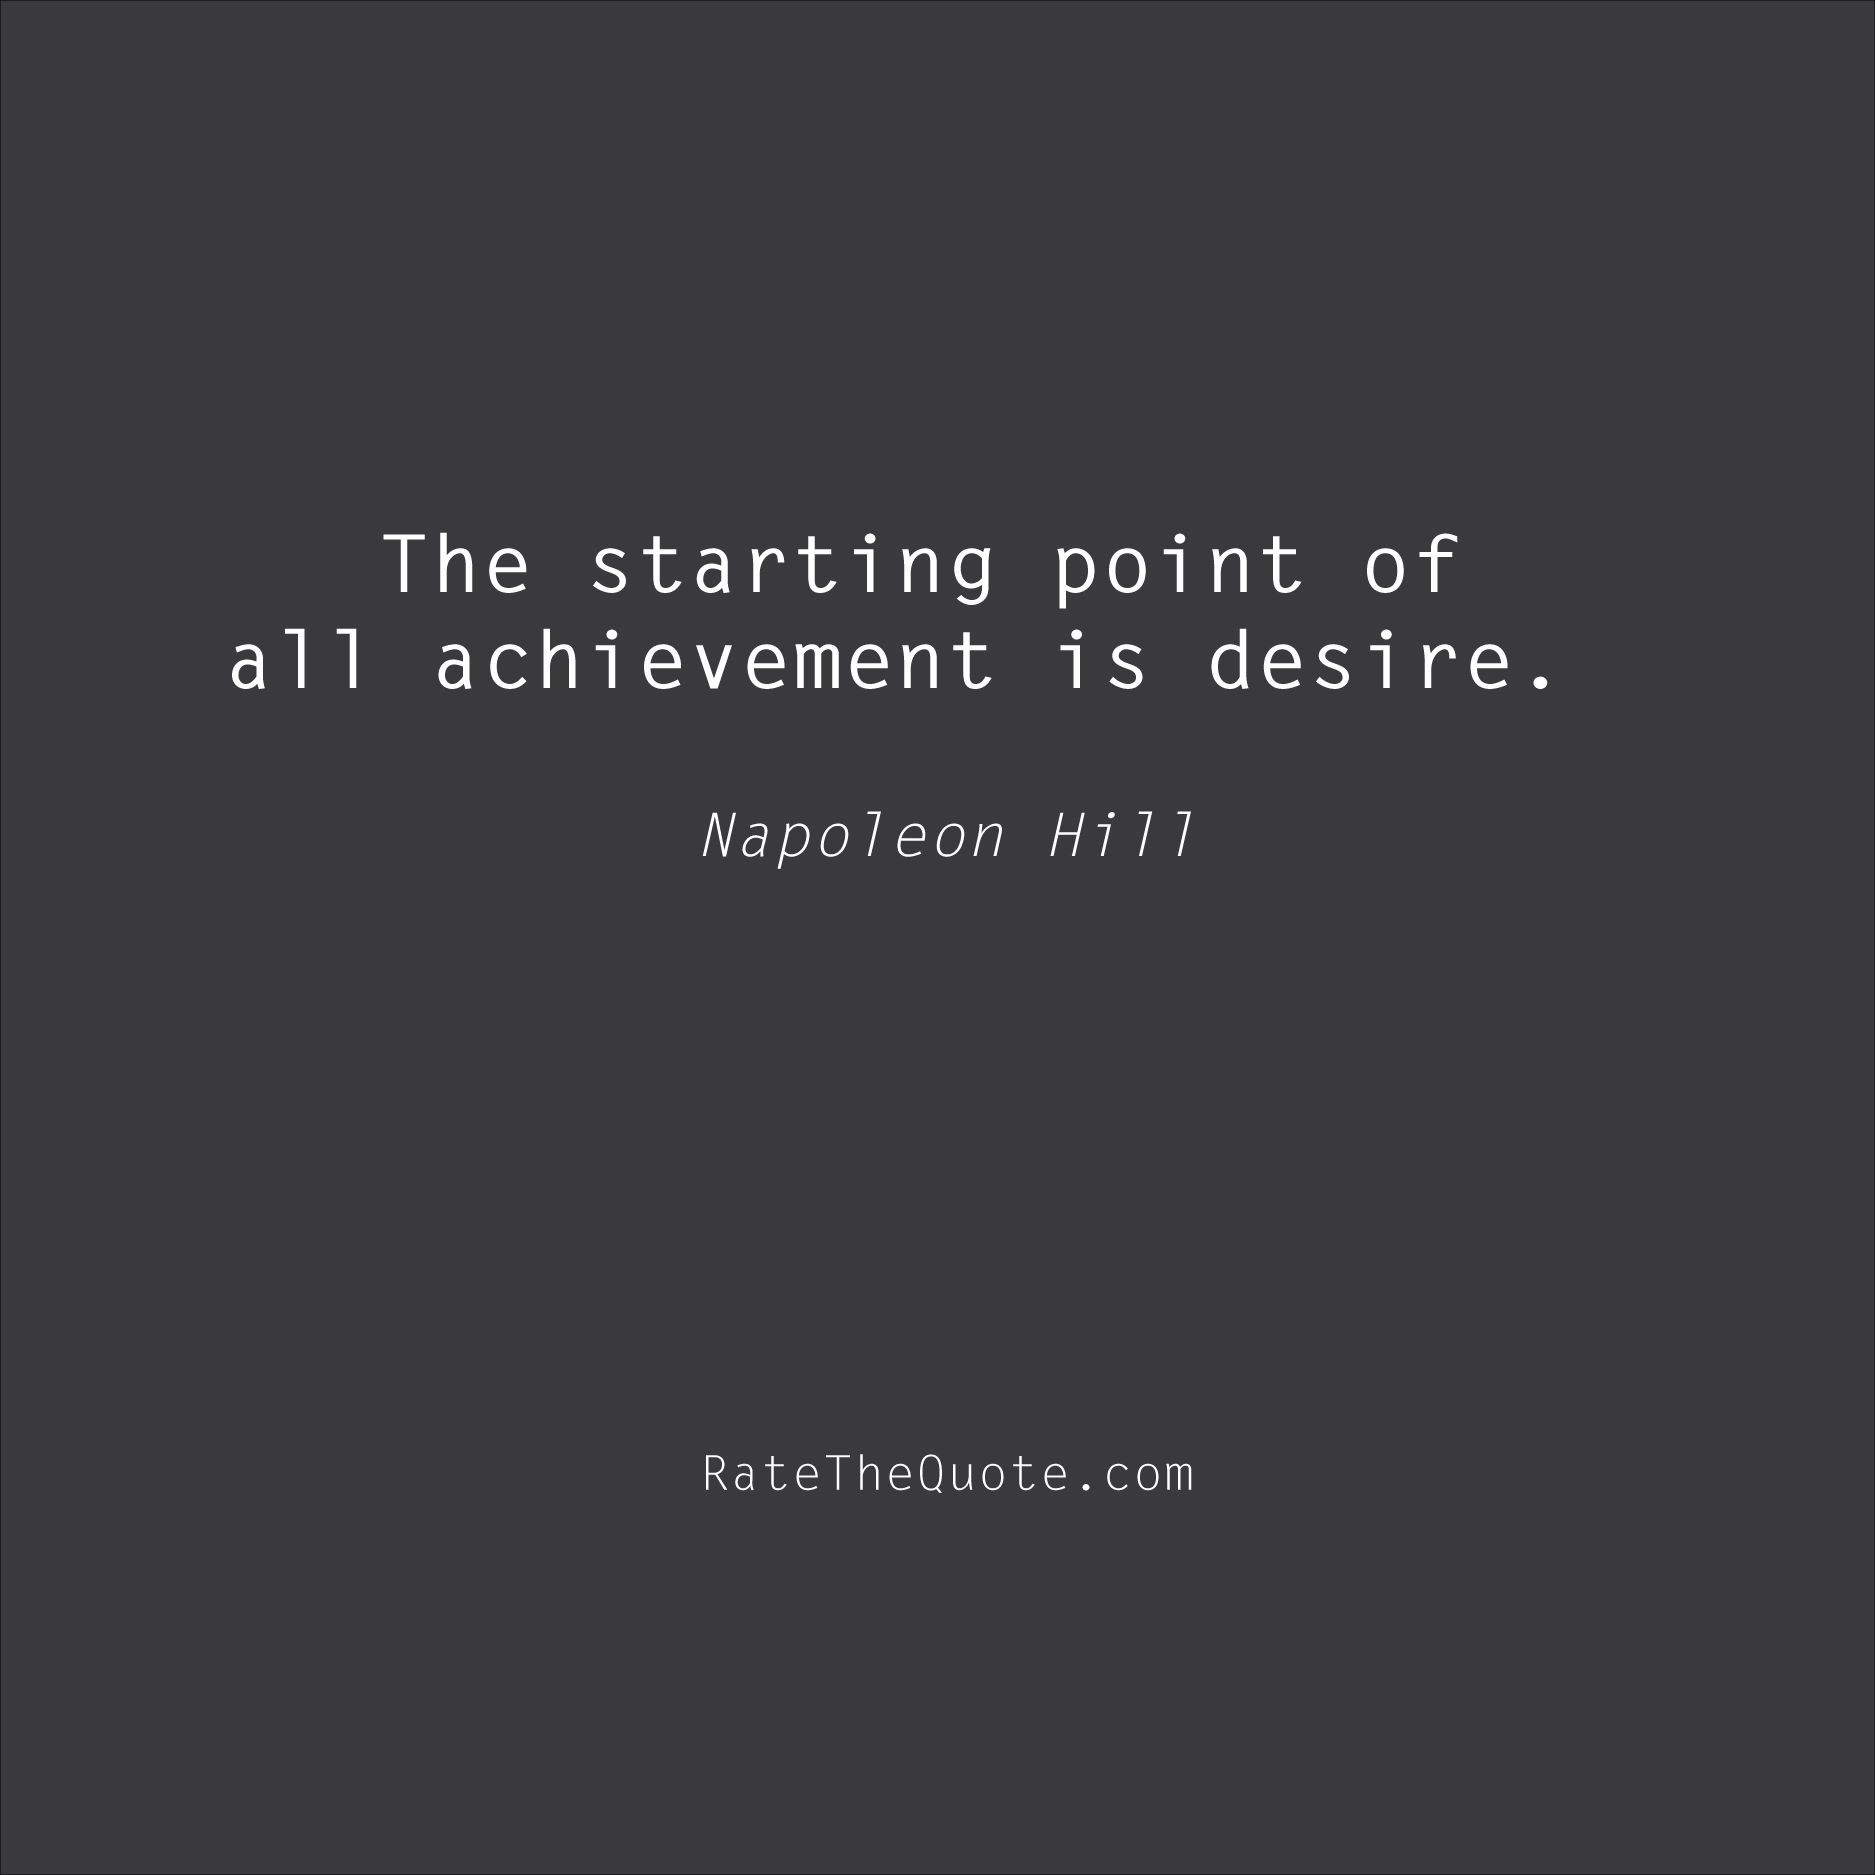 Success Quotes The starting point of all achievement is desire. Napoleon Hill